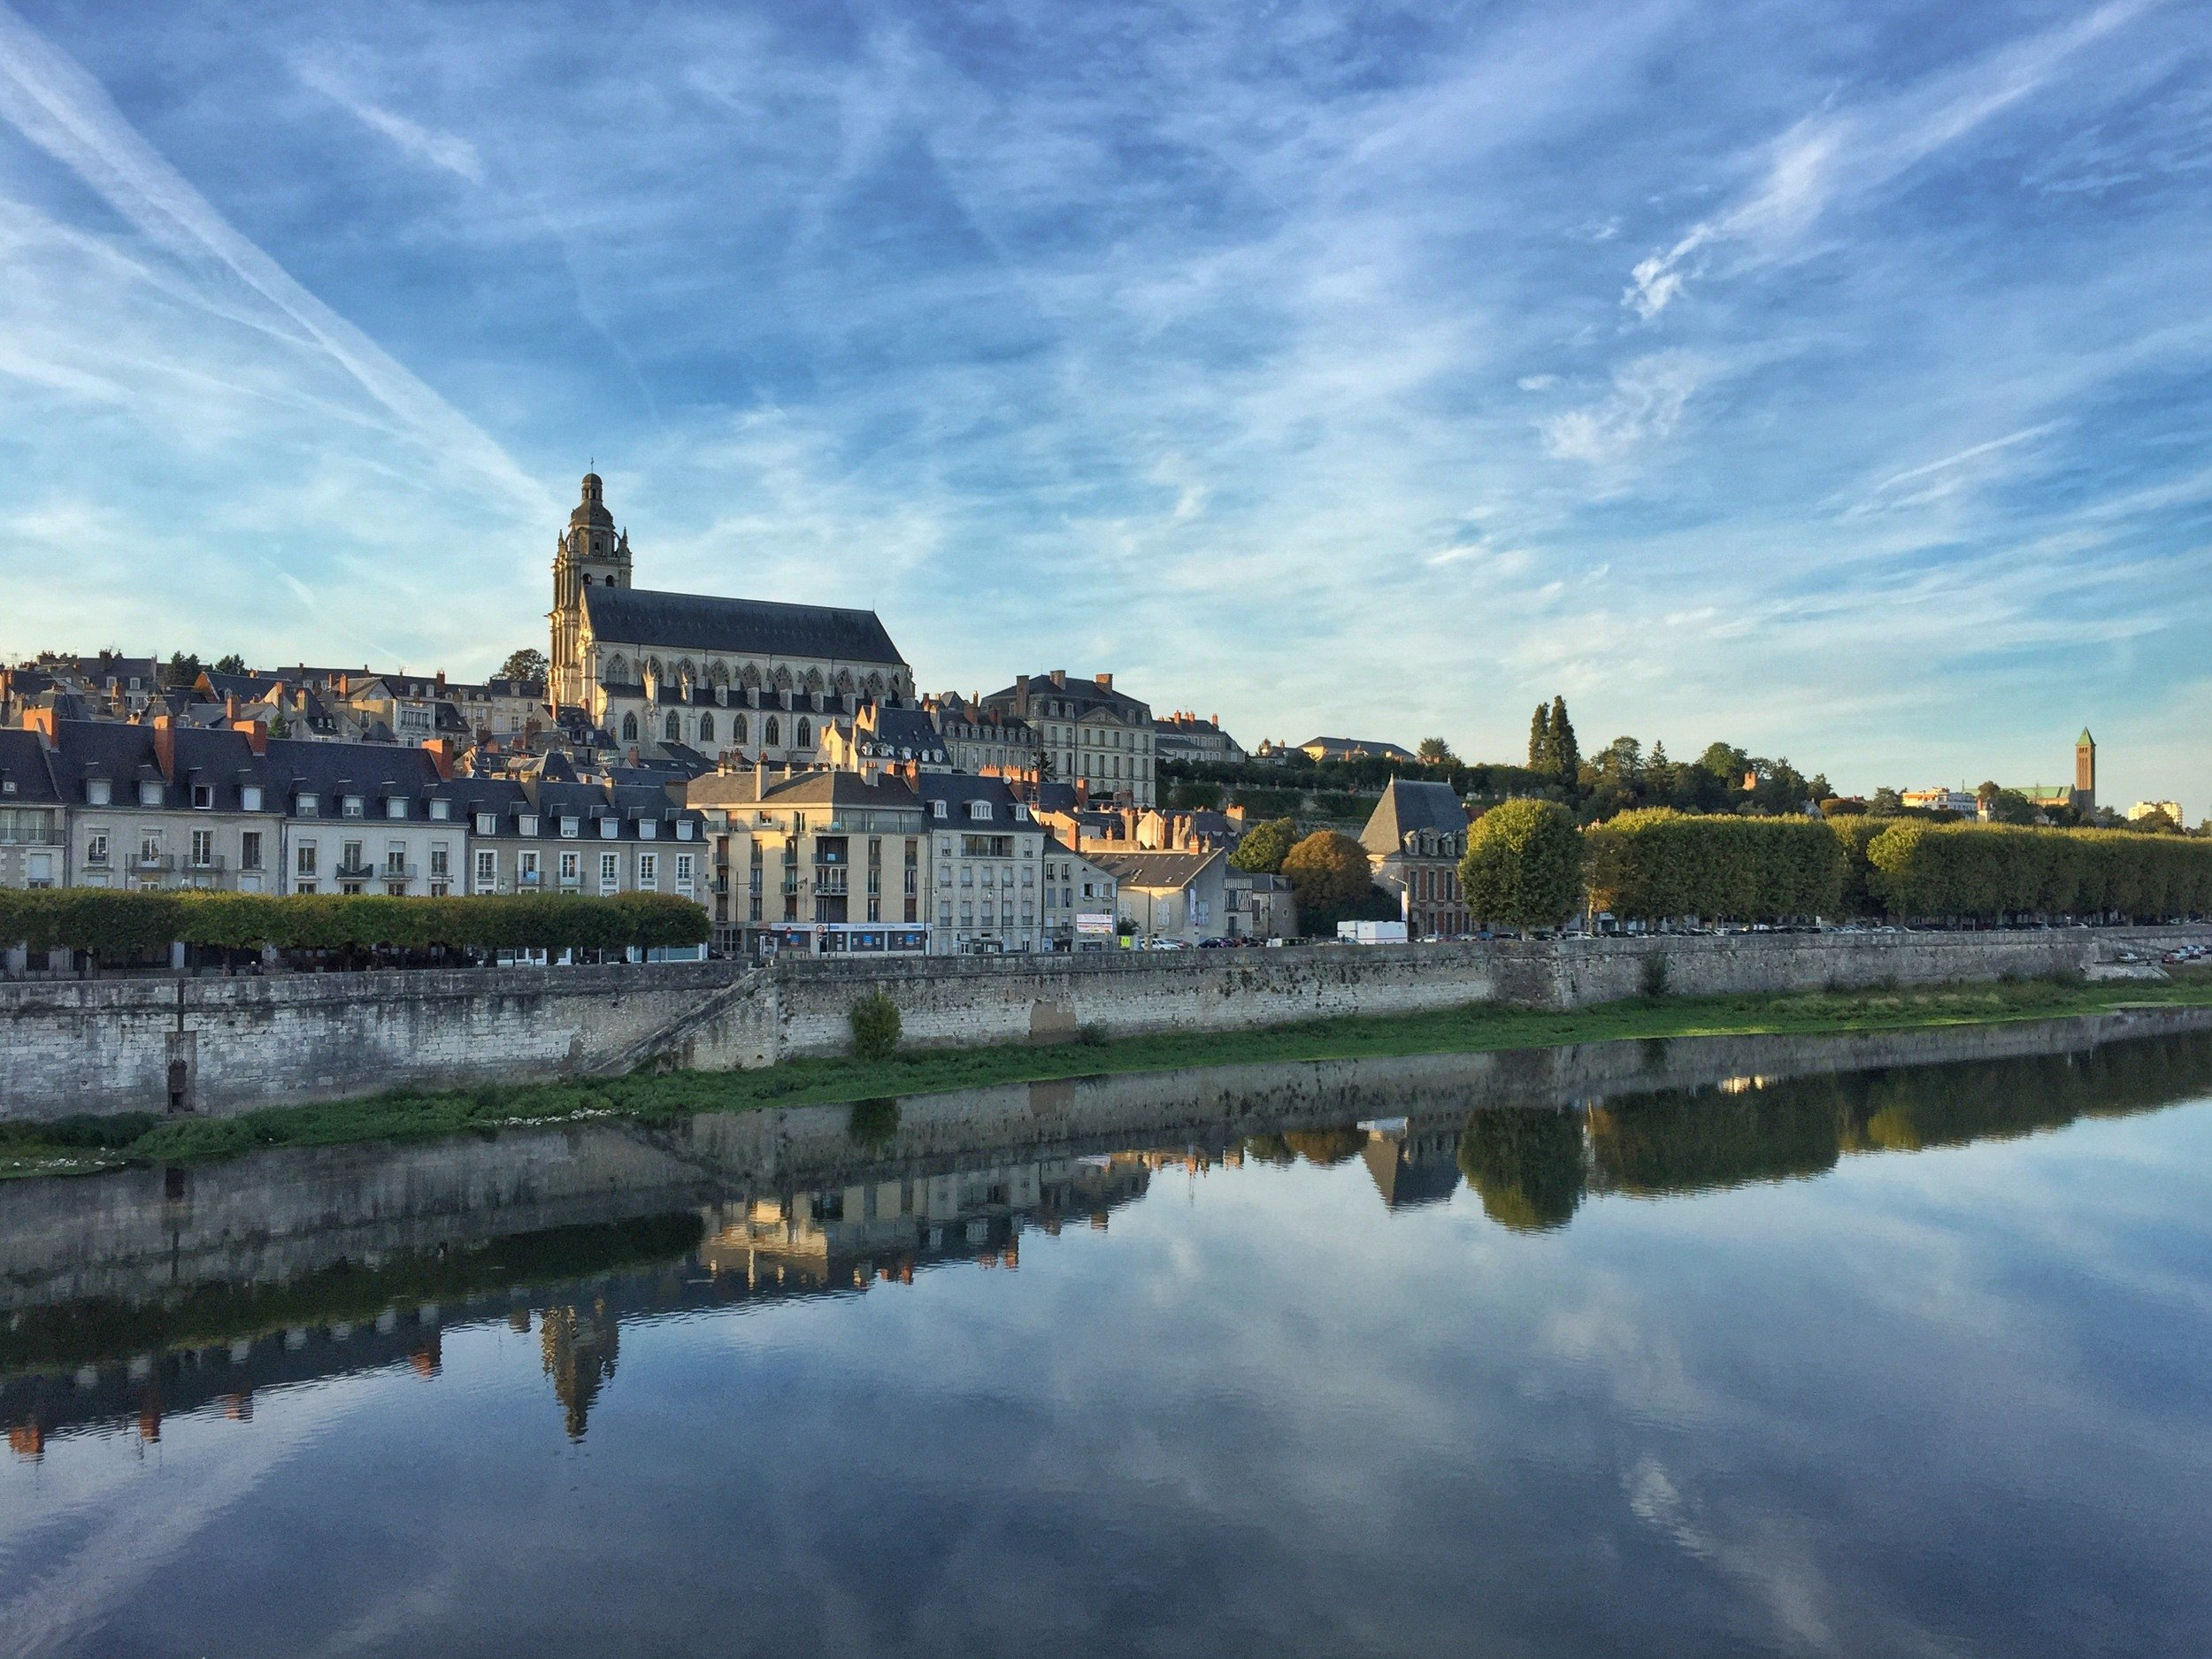 The city of Blois, France